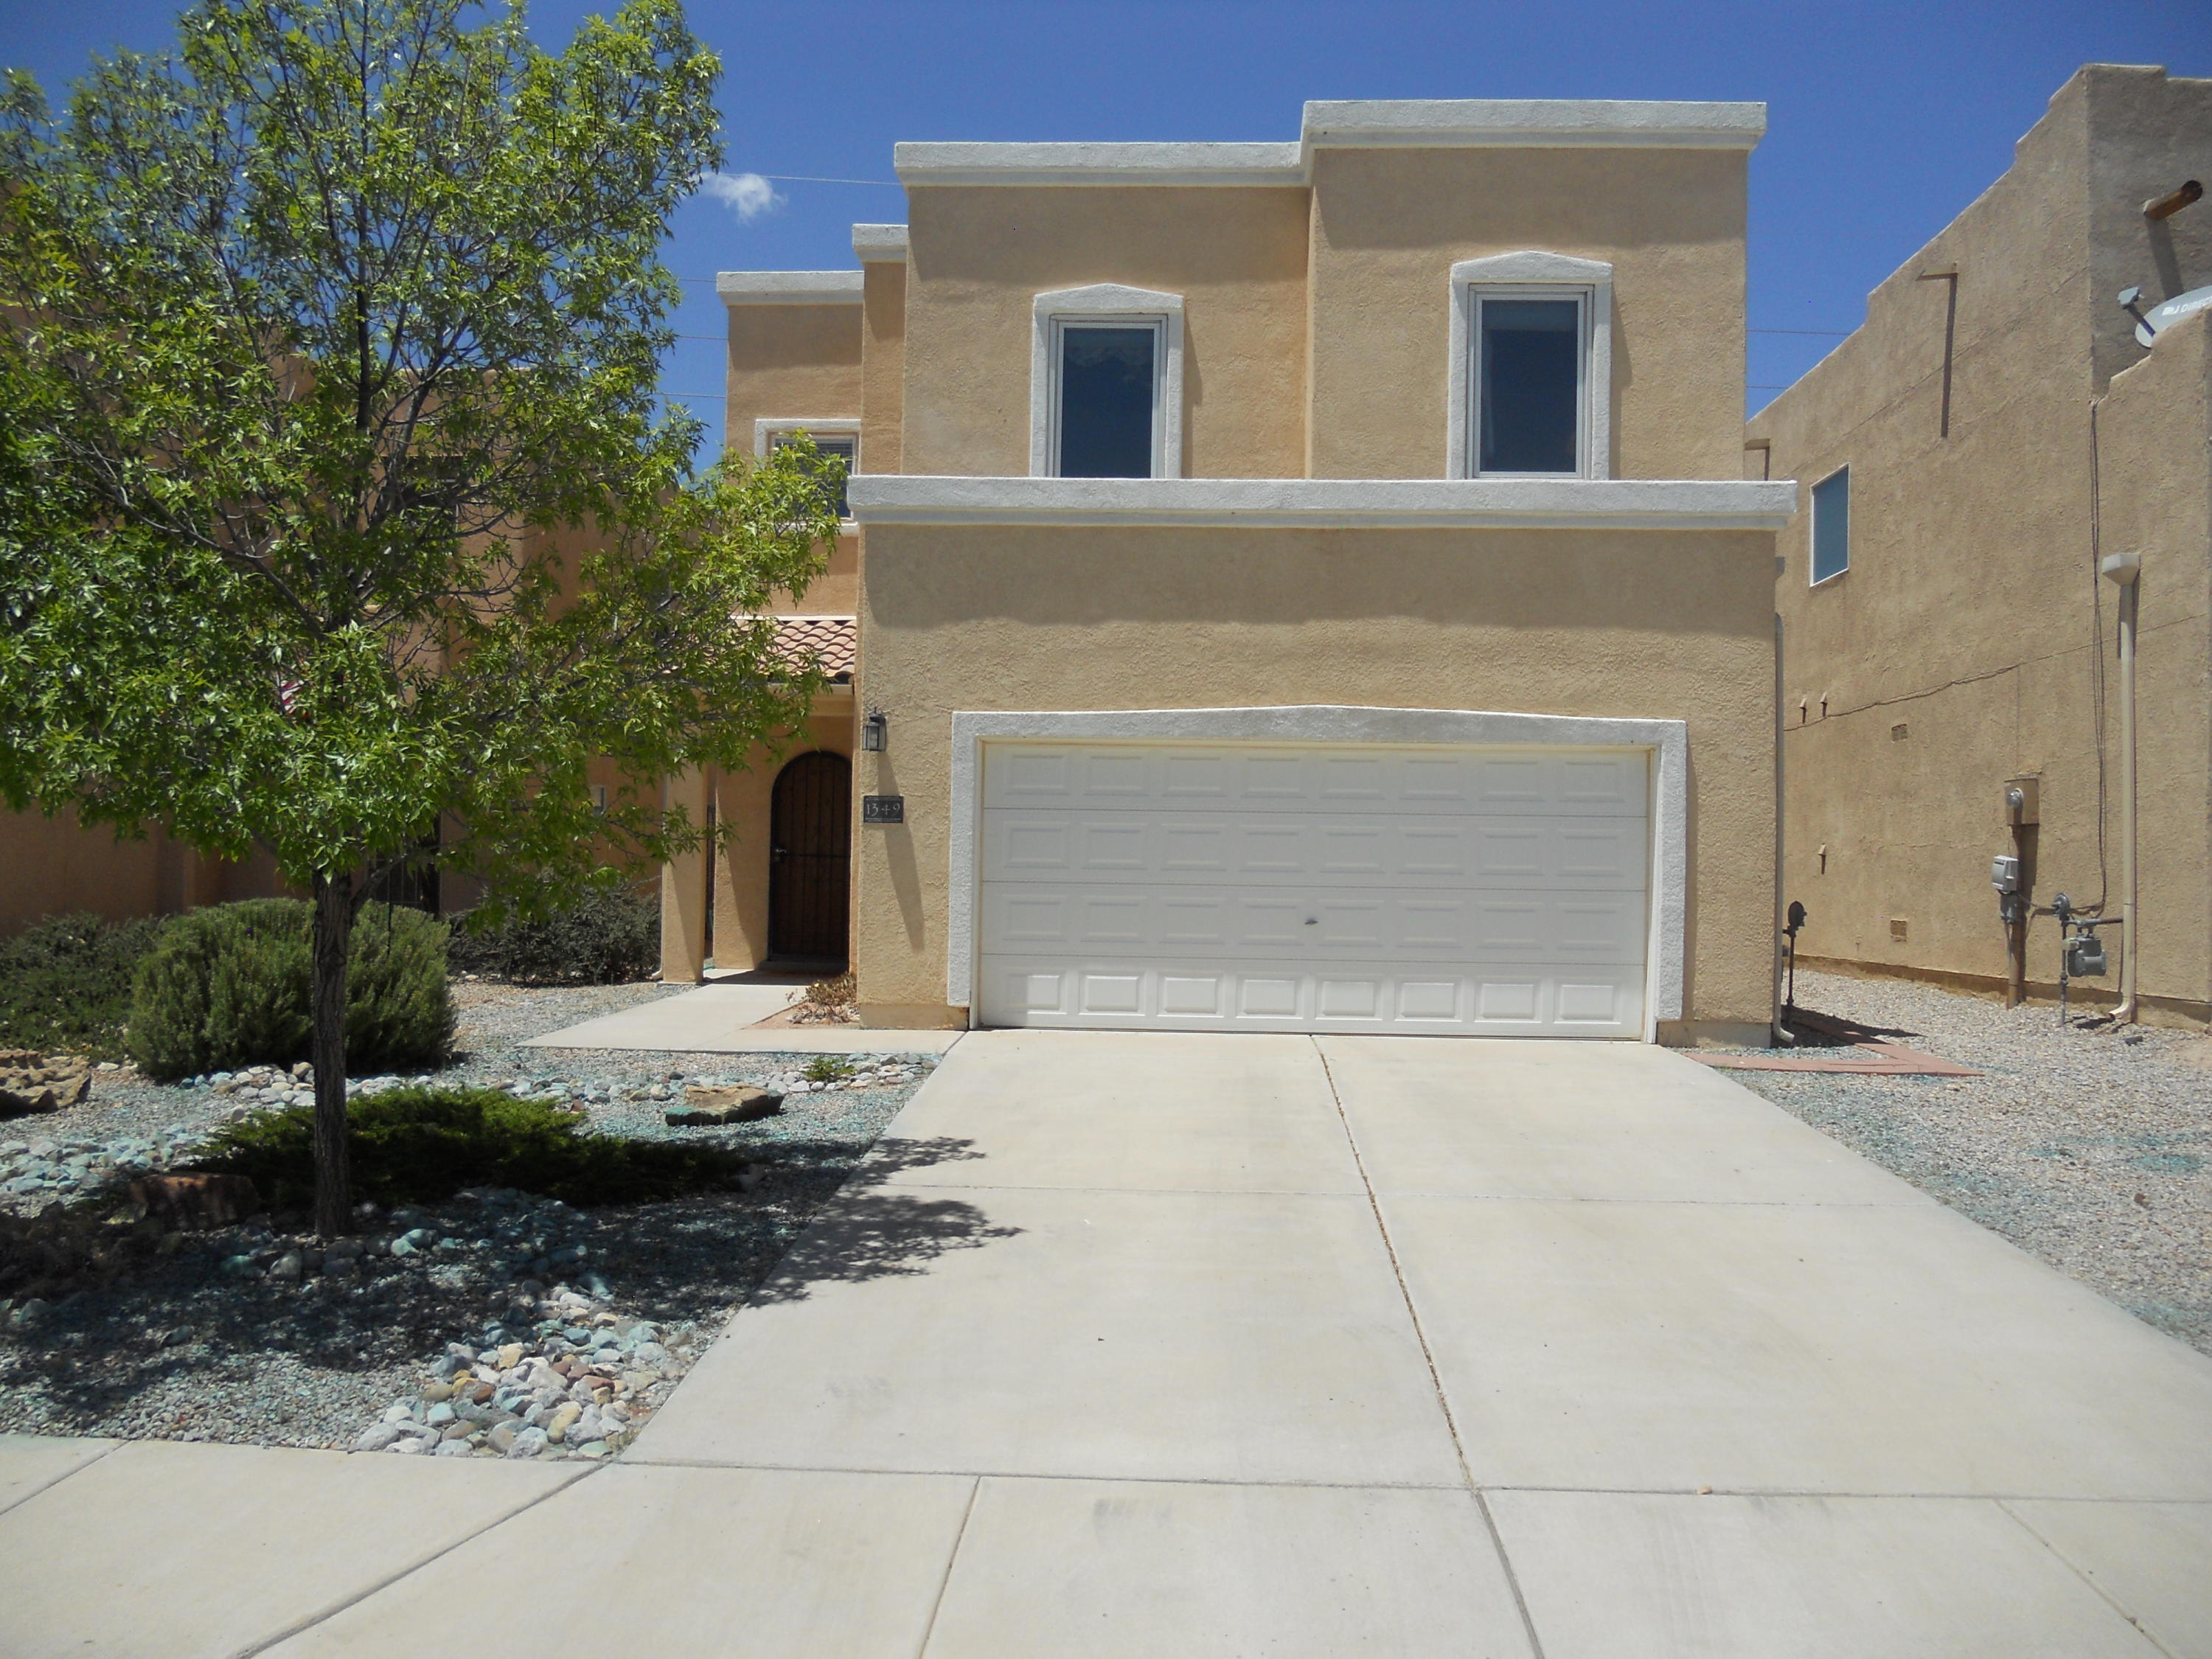 This former CENTEX Model Home is ideally located in southern Rio Rancho close to local businesses and nearby Corrales and Cottonwood Plaza. It has NO HOA but does have many interior upgrades including ceiling fans, Corian countertops, built-in double oven and microwave, and pre-wired speakers in Great Room.Recent improvements include new roof in Feb., 2020, 4 Pella windows in 2012, and adjustable hot water timer.  Master Suite is on ground floor. It has a large walk-in closet and separate shower/tub. All other bedrooms are upstairs.   All appliances stay! Interior decorations and furniture can remain (in exchange for Buyer's  donation to Seller's chosen non-profit).  Don't lose out on this GREAT home!Seller requires 24 hr to respond to Offer.